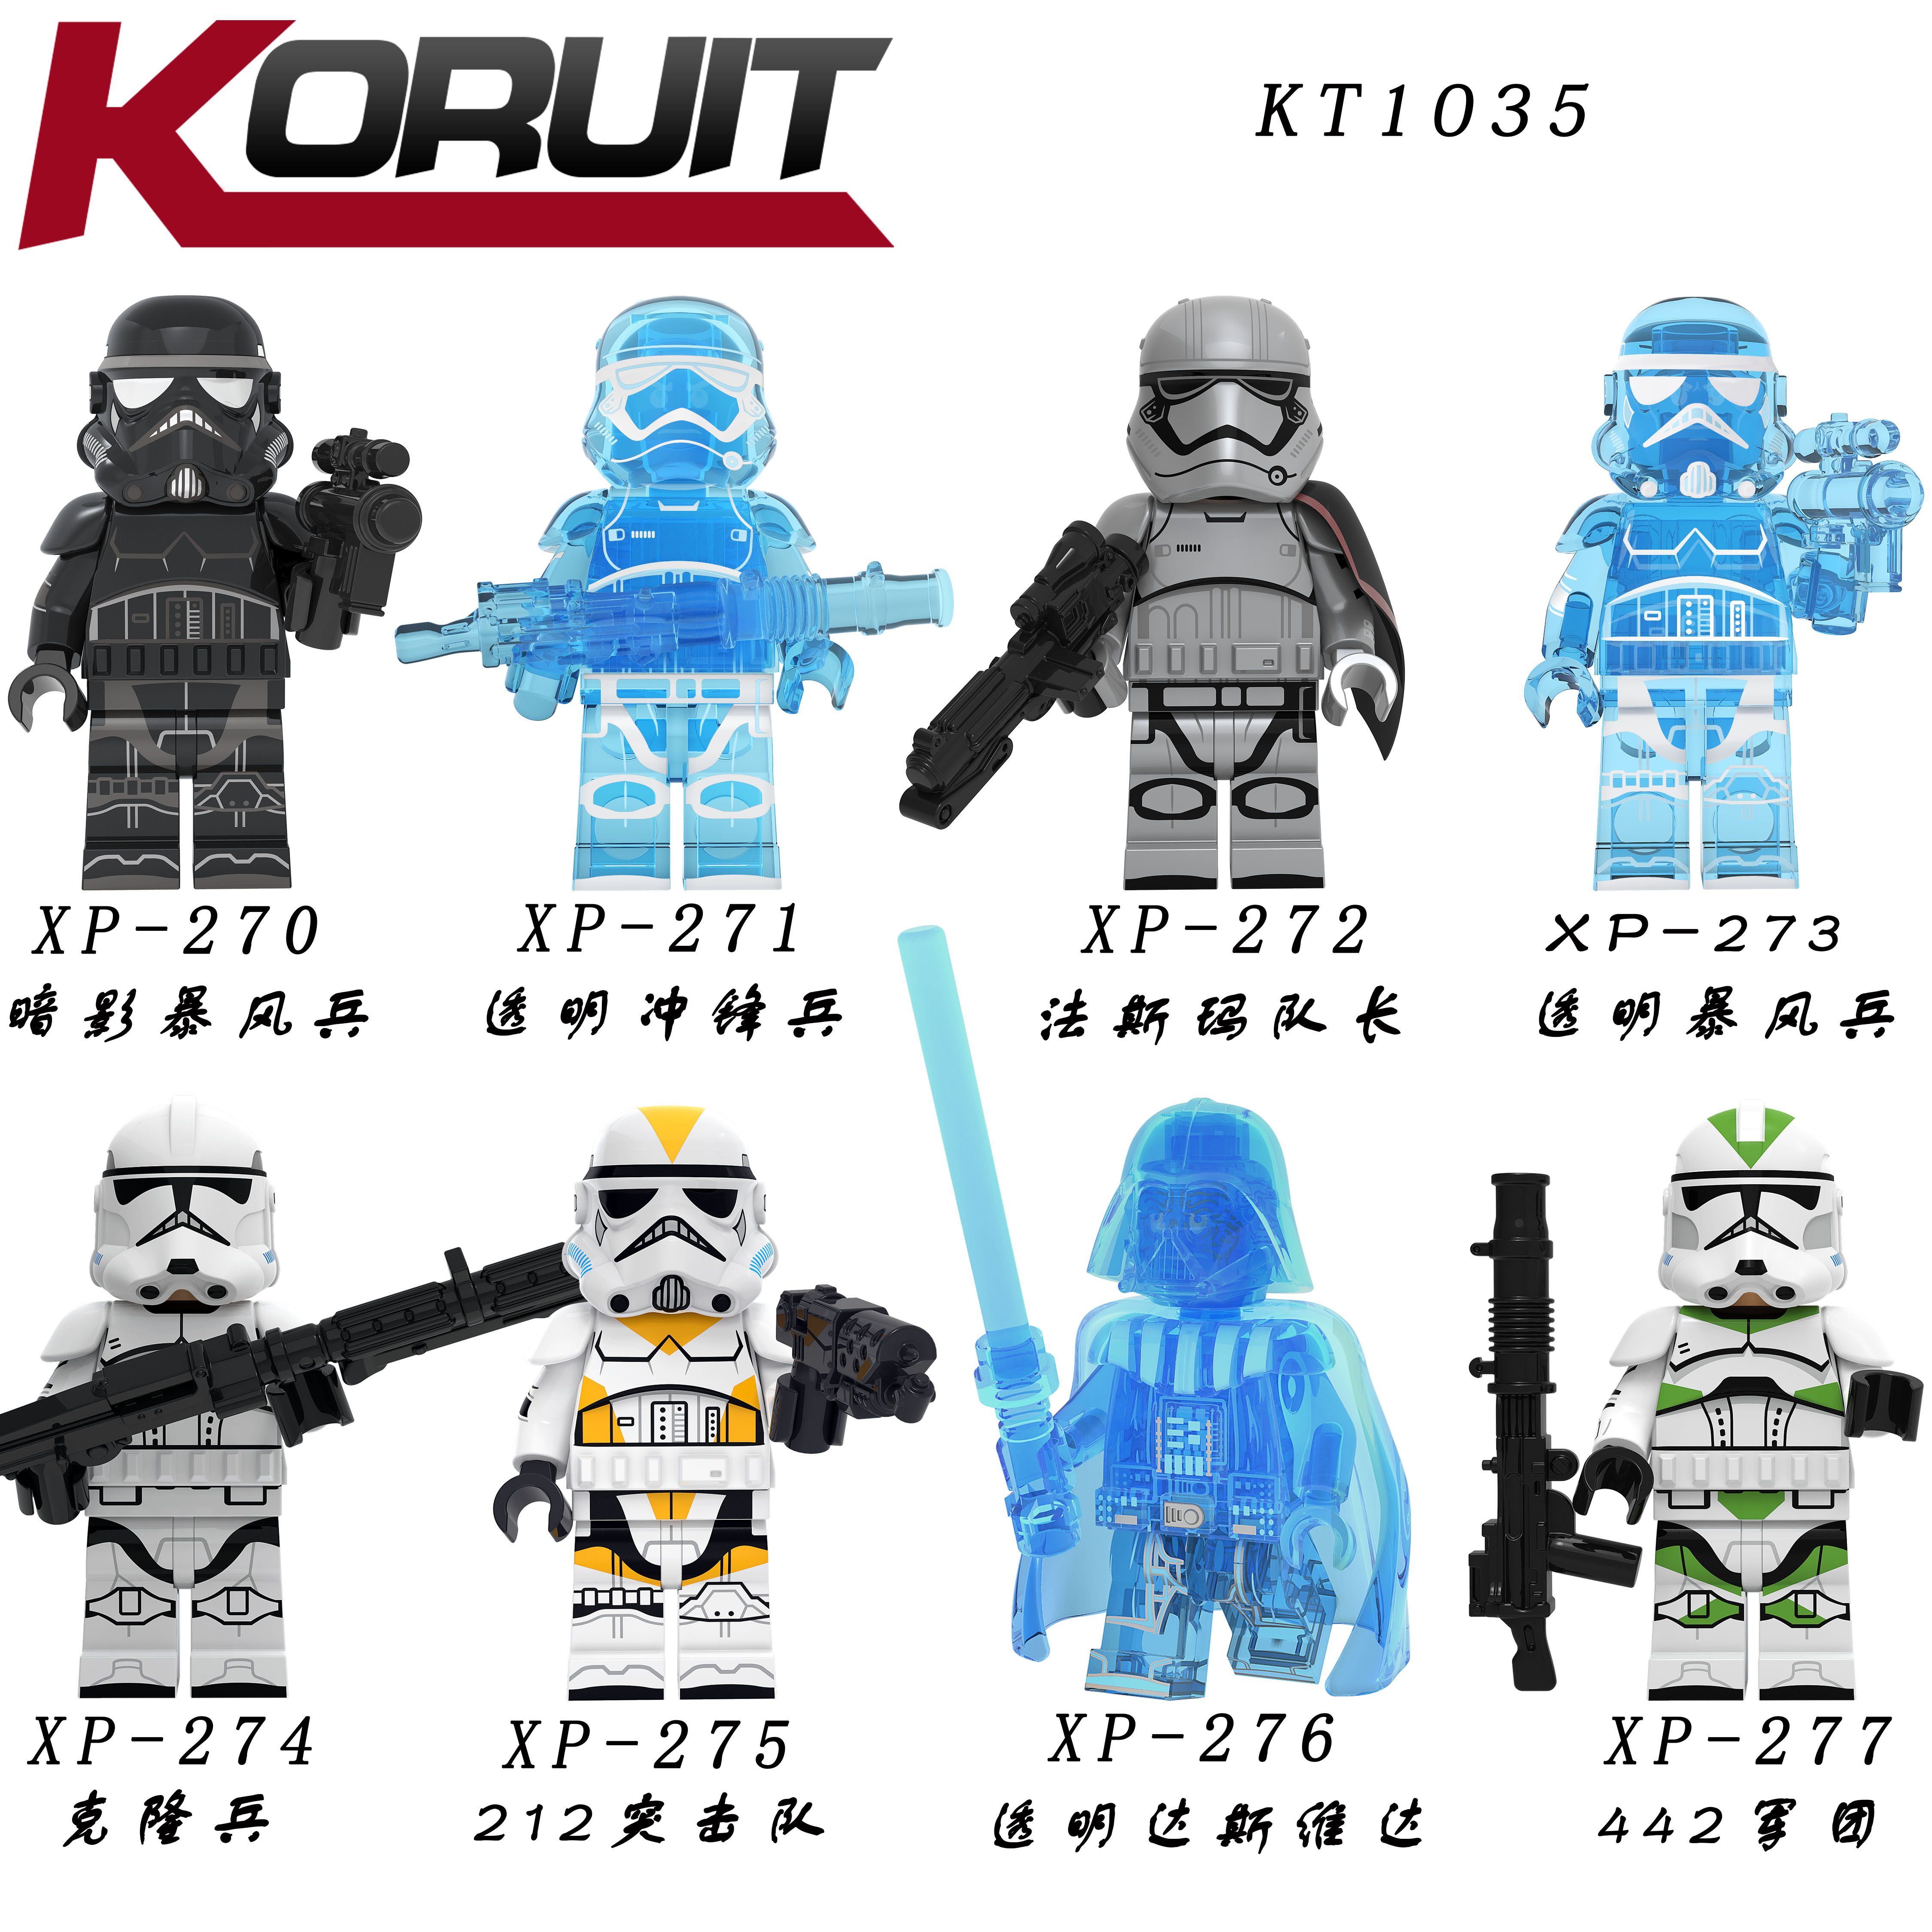 Star Wars Luke Leia Starwars Transparent Darth Vader Maul Storm Troops Clone Soldier Yoda  Legoimg Building Blocks Toys For Kids